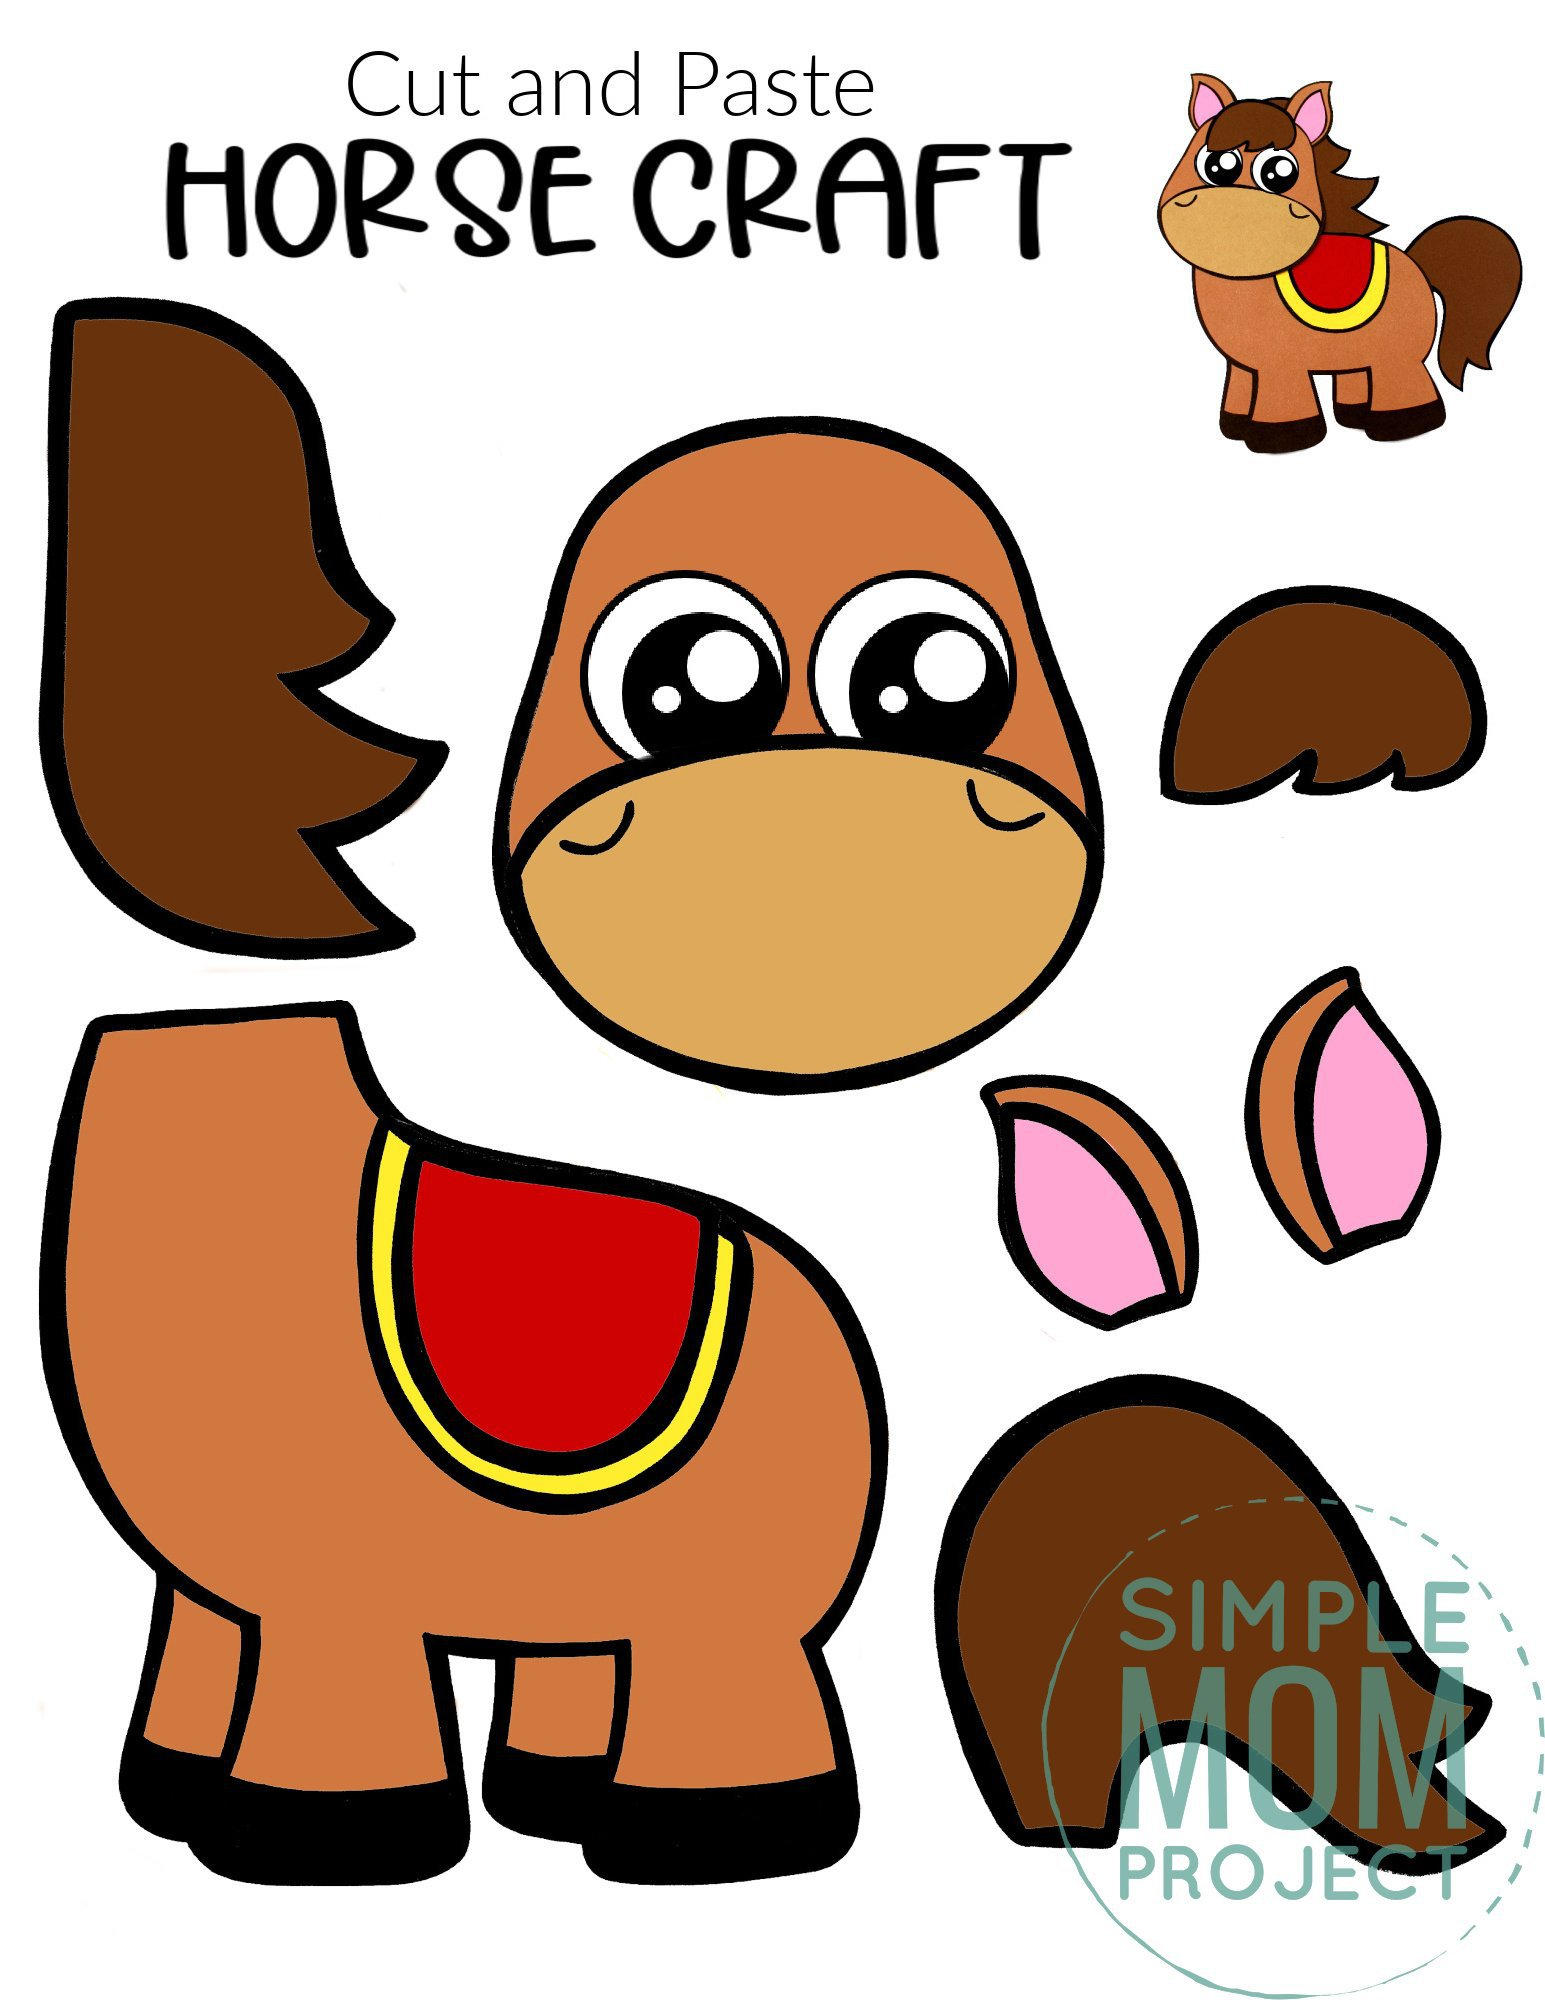 Free Printable Cut and Paste Horse Craft Template Craft for kids, preschoolers and toddlers